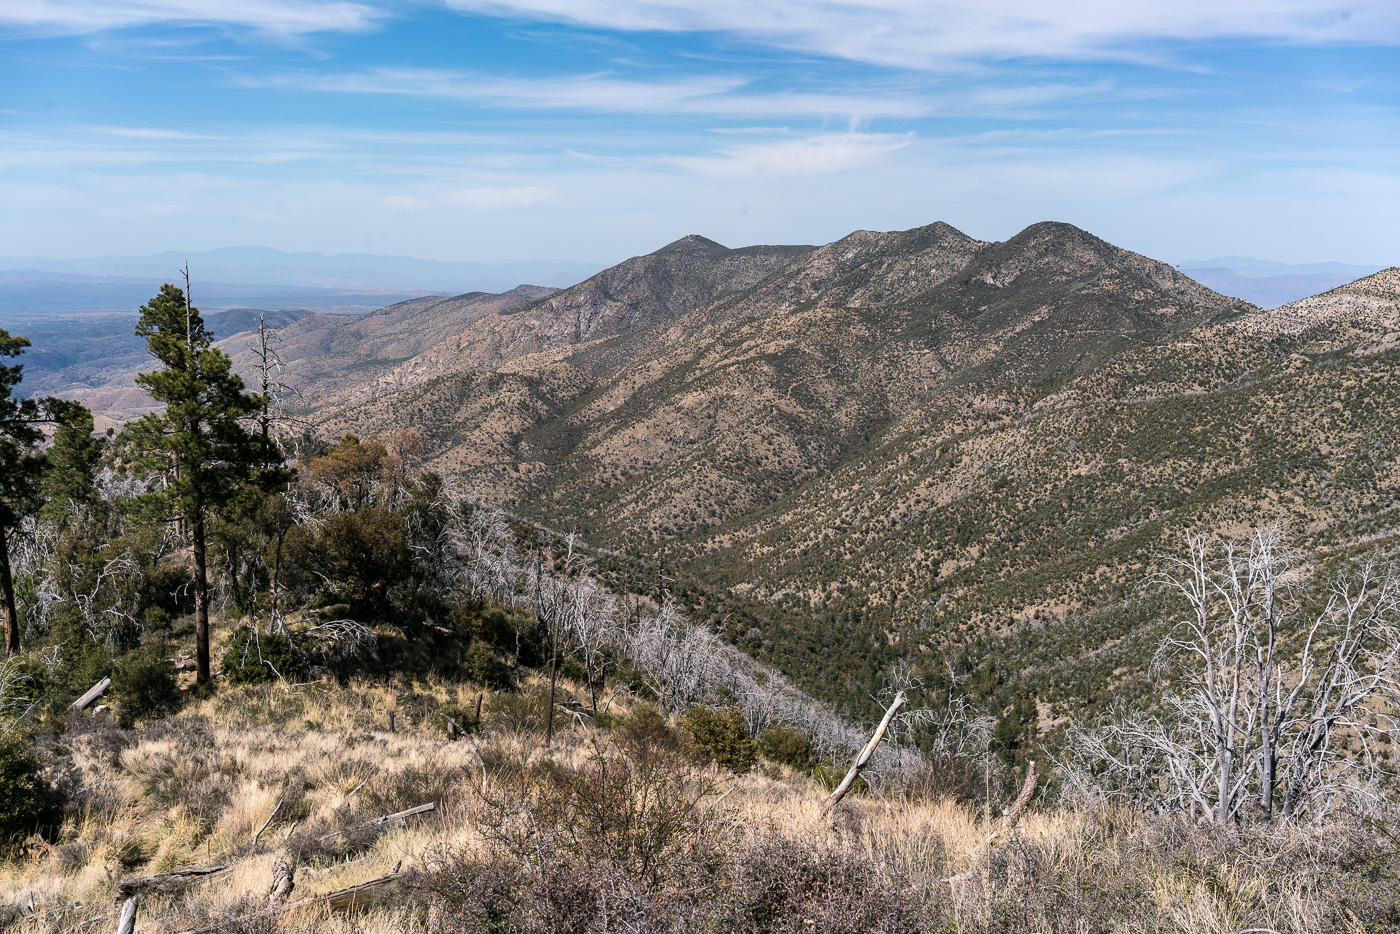 Oracle Ridge and Rice Peak from the Red Ridge Trail - the Catalina Camp Trail can be seen descending from Oracle Ridge towards its junction with the Red Ridge Trail. April 2017.